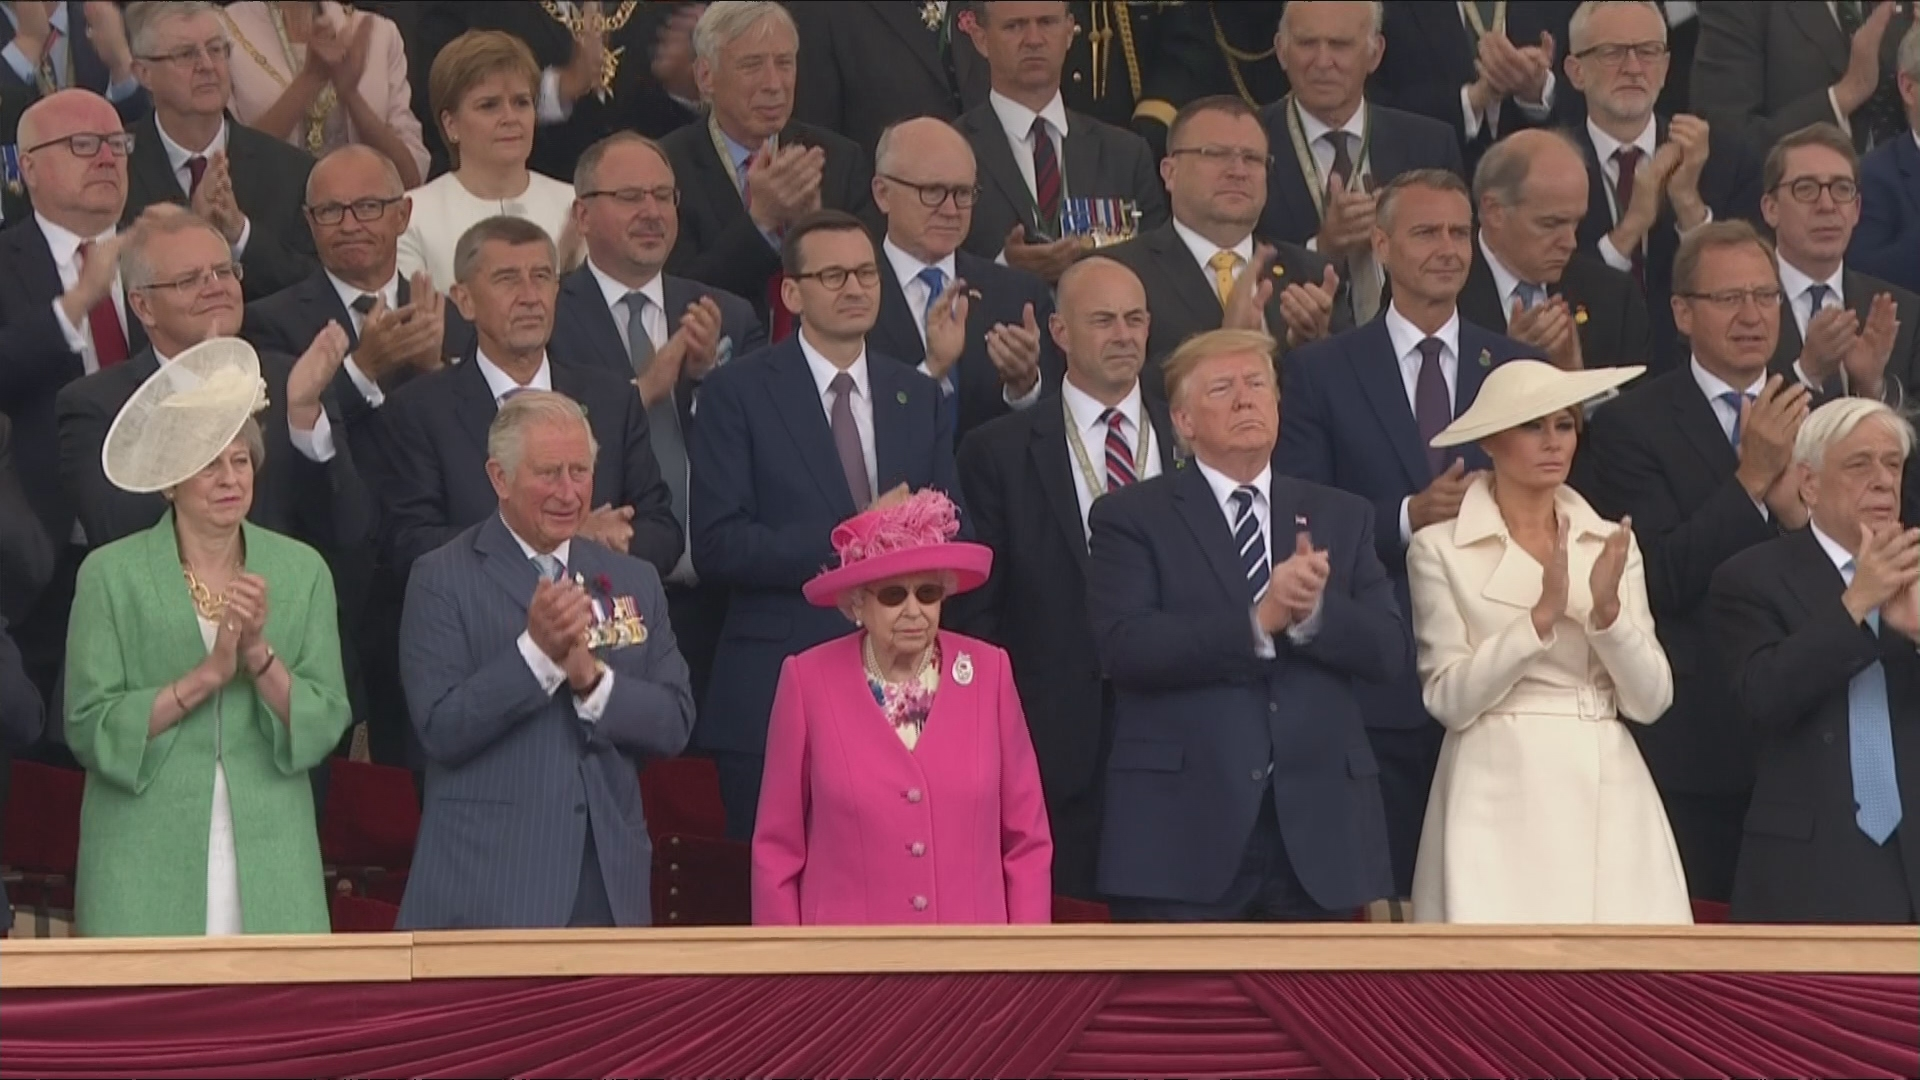 Donald Trump Boasts About 'Automatic Chemistry' With The Queen